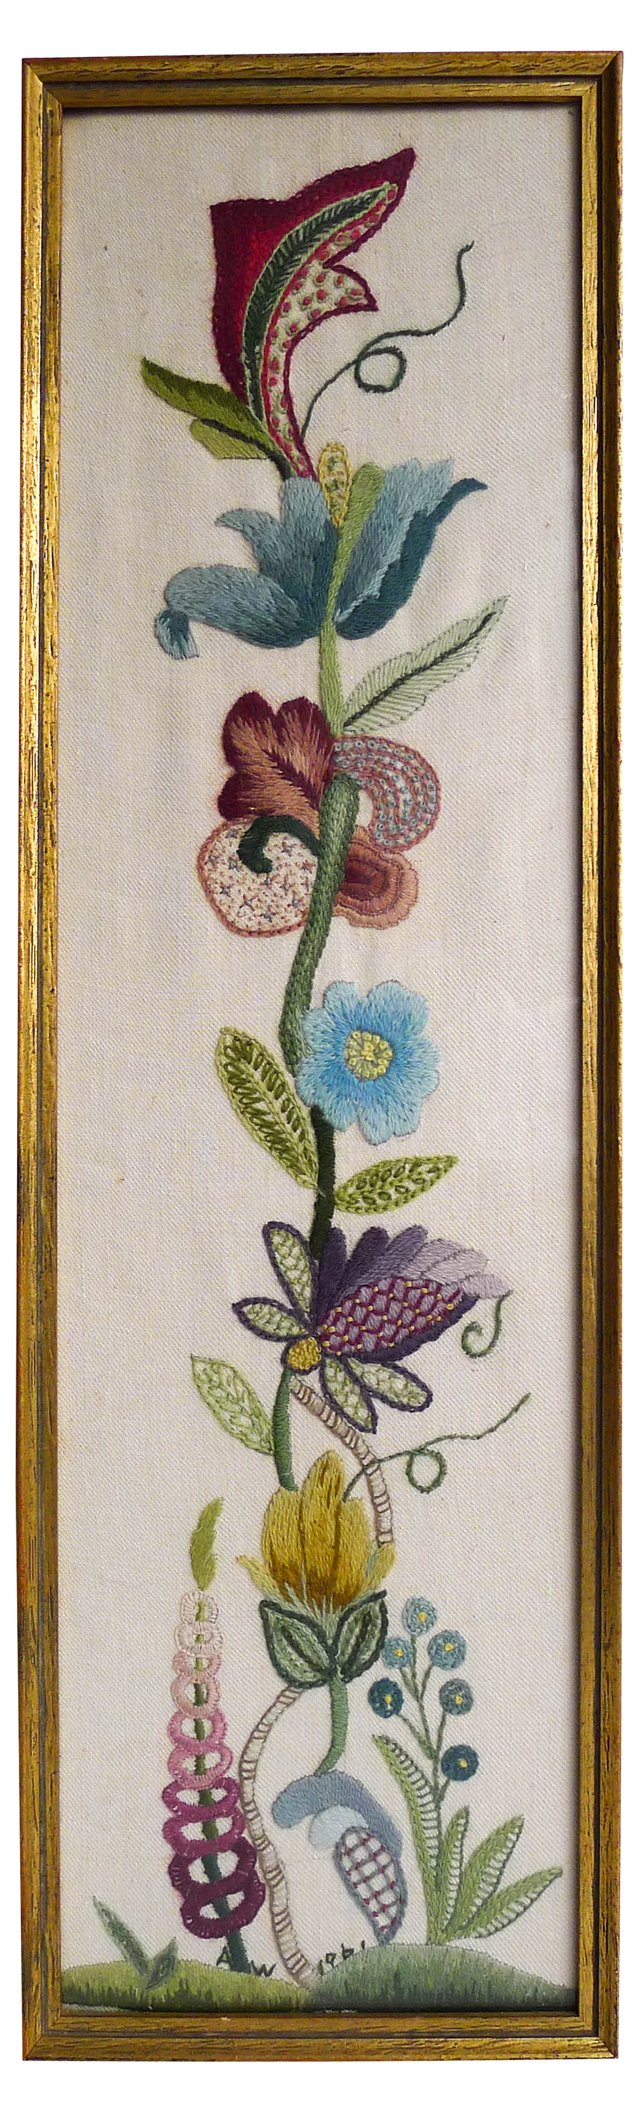 Midcentury Floral Crewelwork